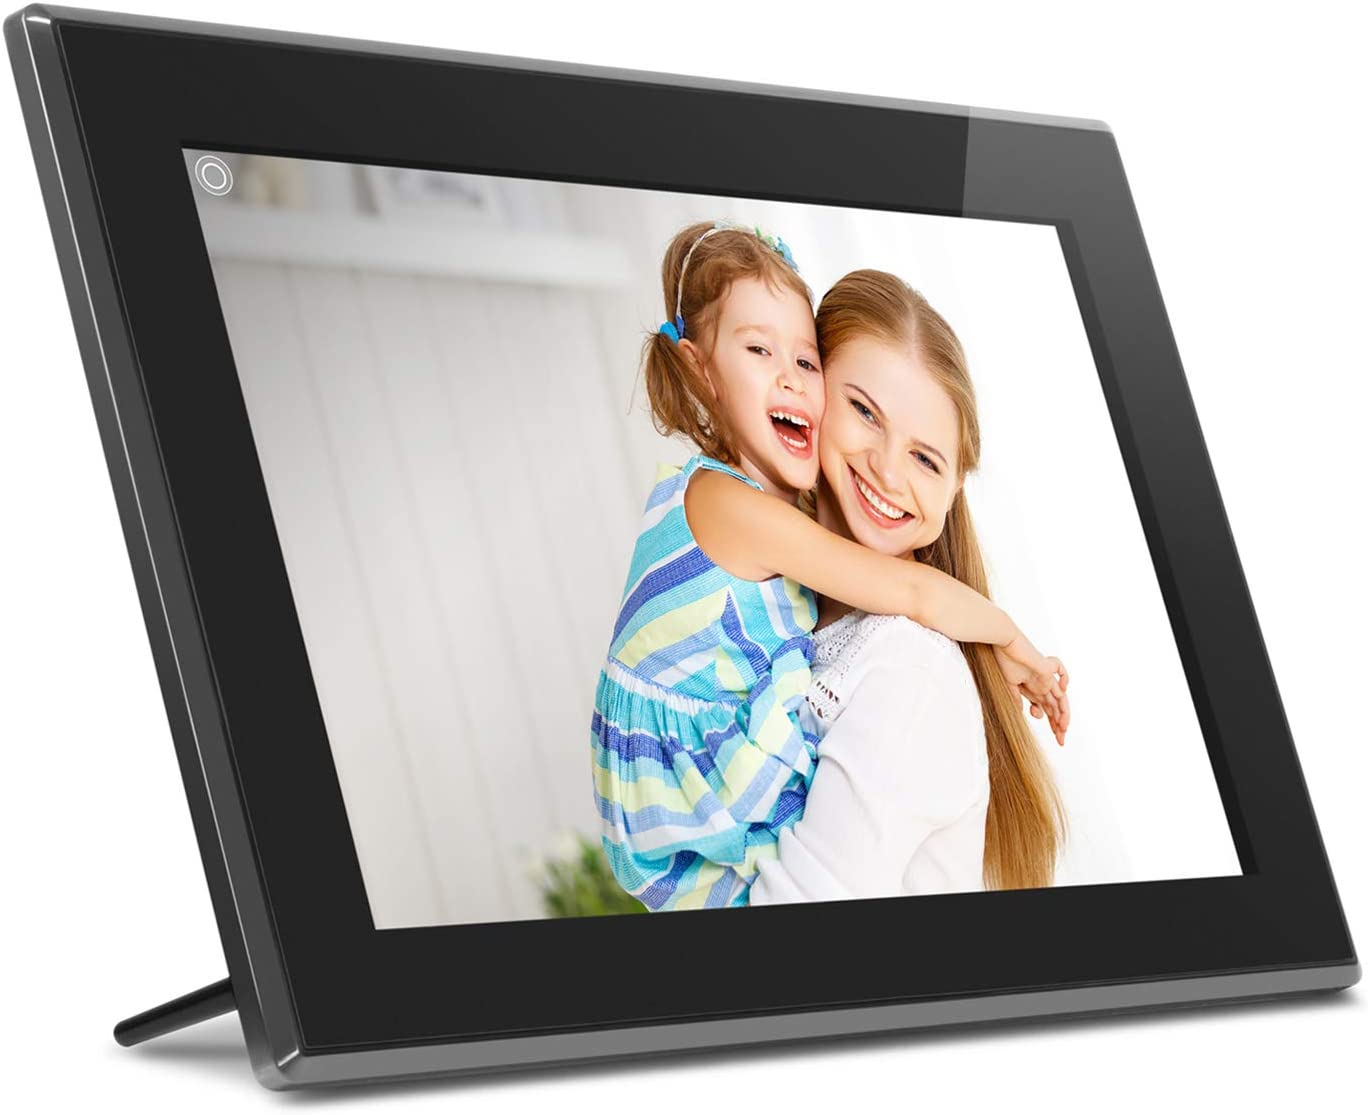 """Aluratek 15.6"""" WiFi Digital Photo Frame with Touchscreen IPS LCD Display & 16GB Built-in Memory, Photo/Music/Video (AWS15F)"""